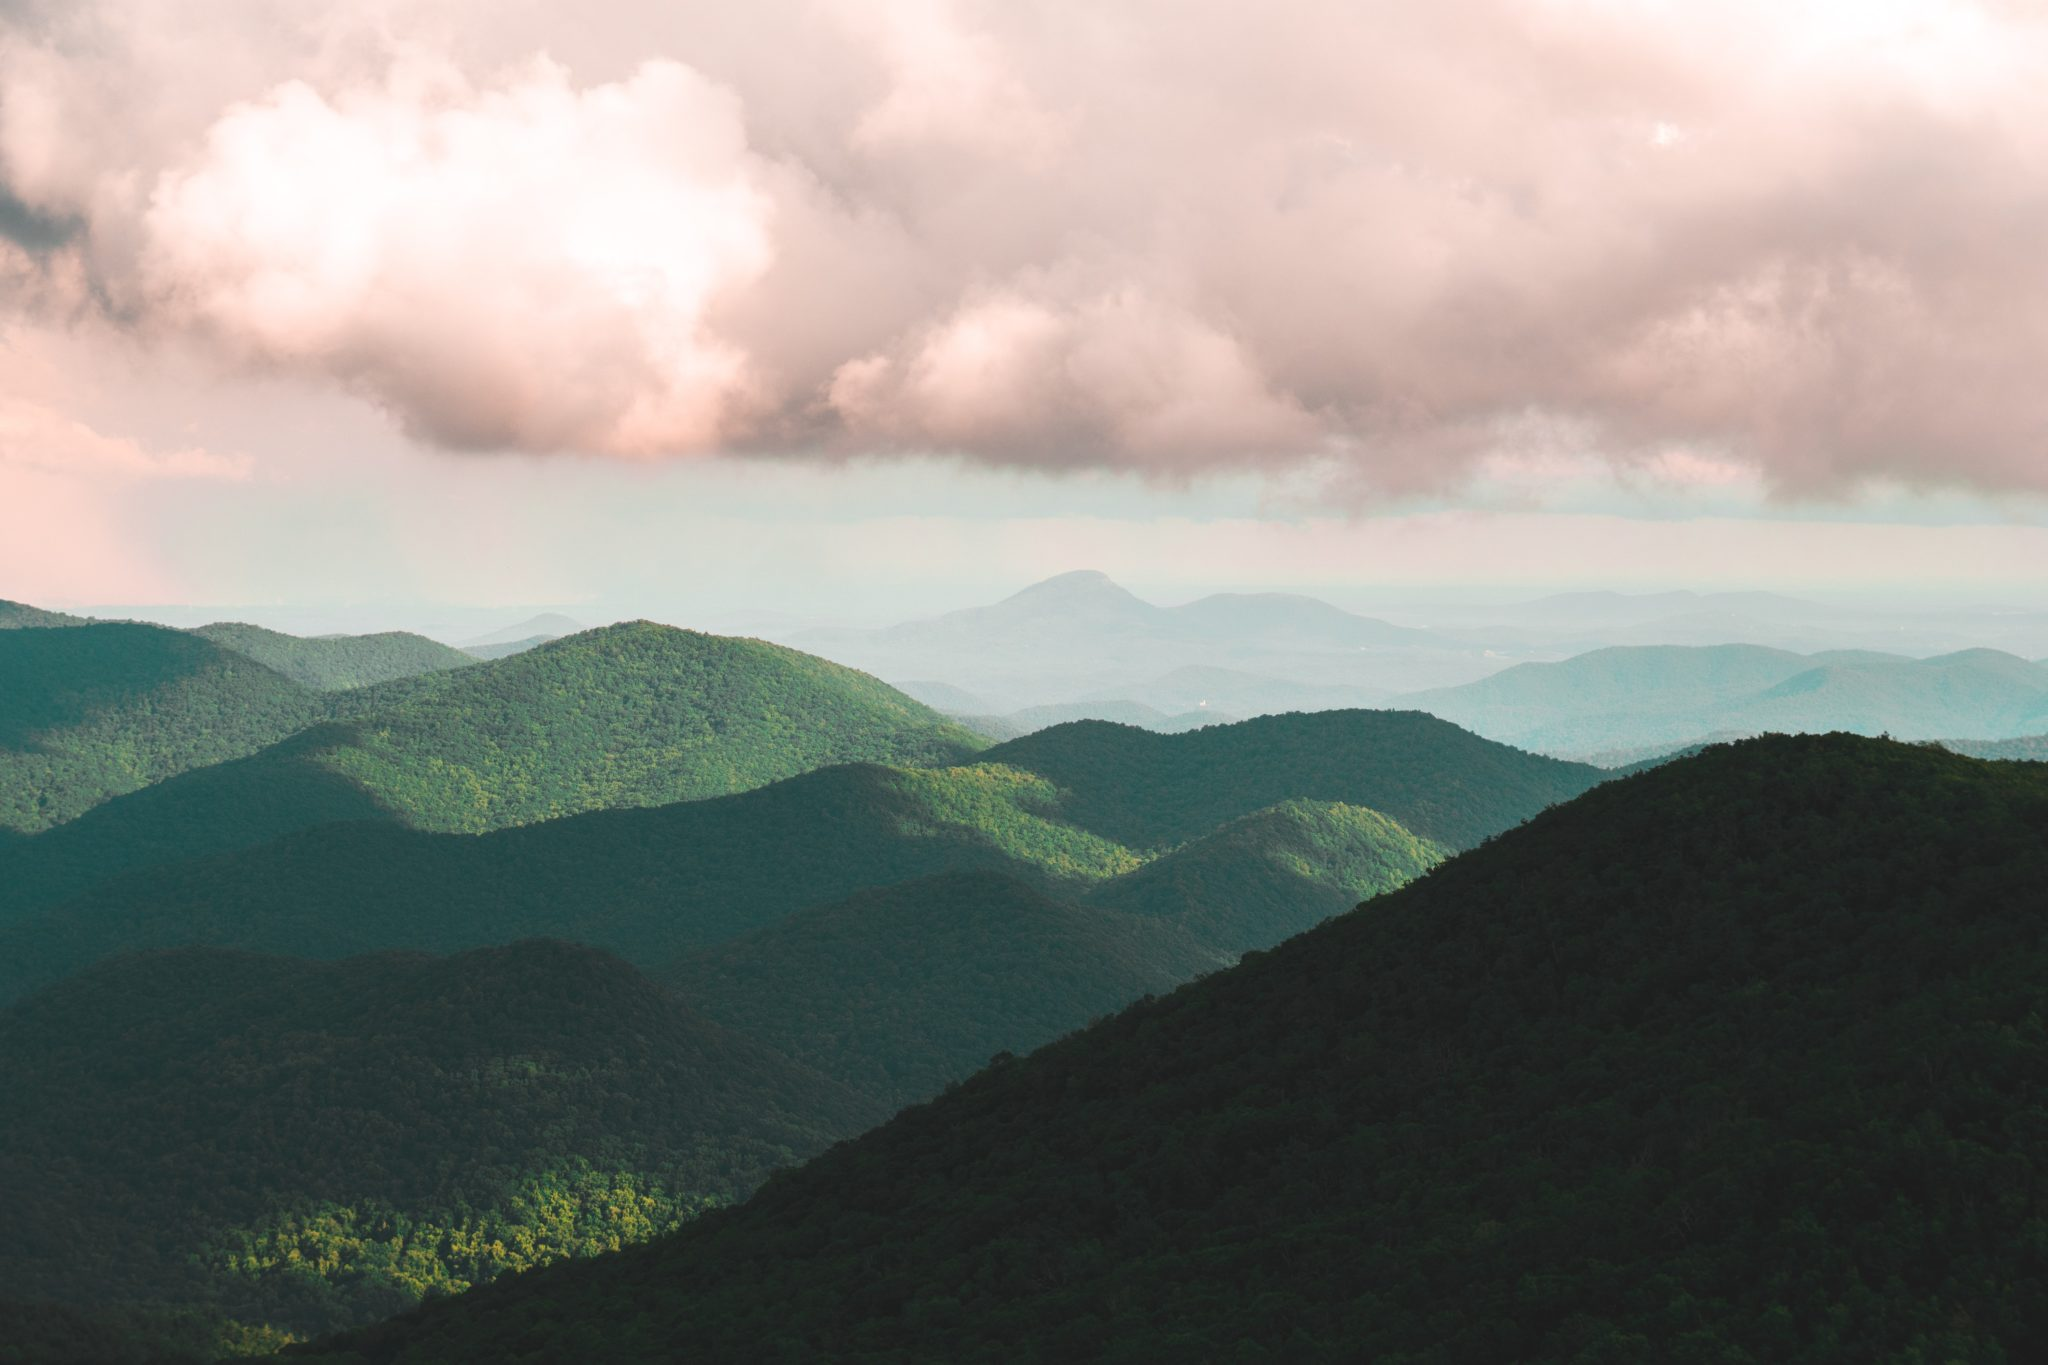 View of green mountains and pink sky in Brasstown Bald, Georgia, near the GAHI 30th Anniversary Conference